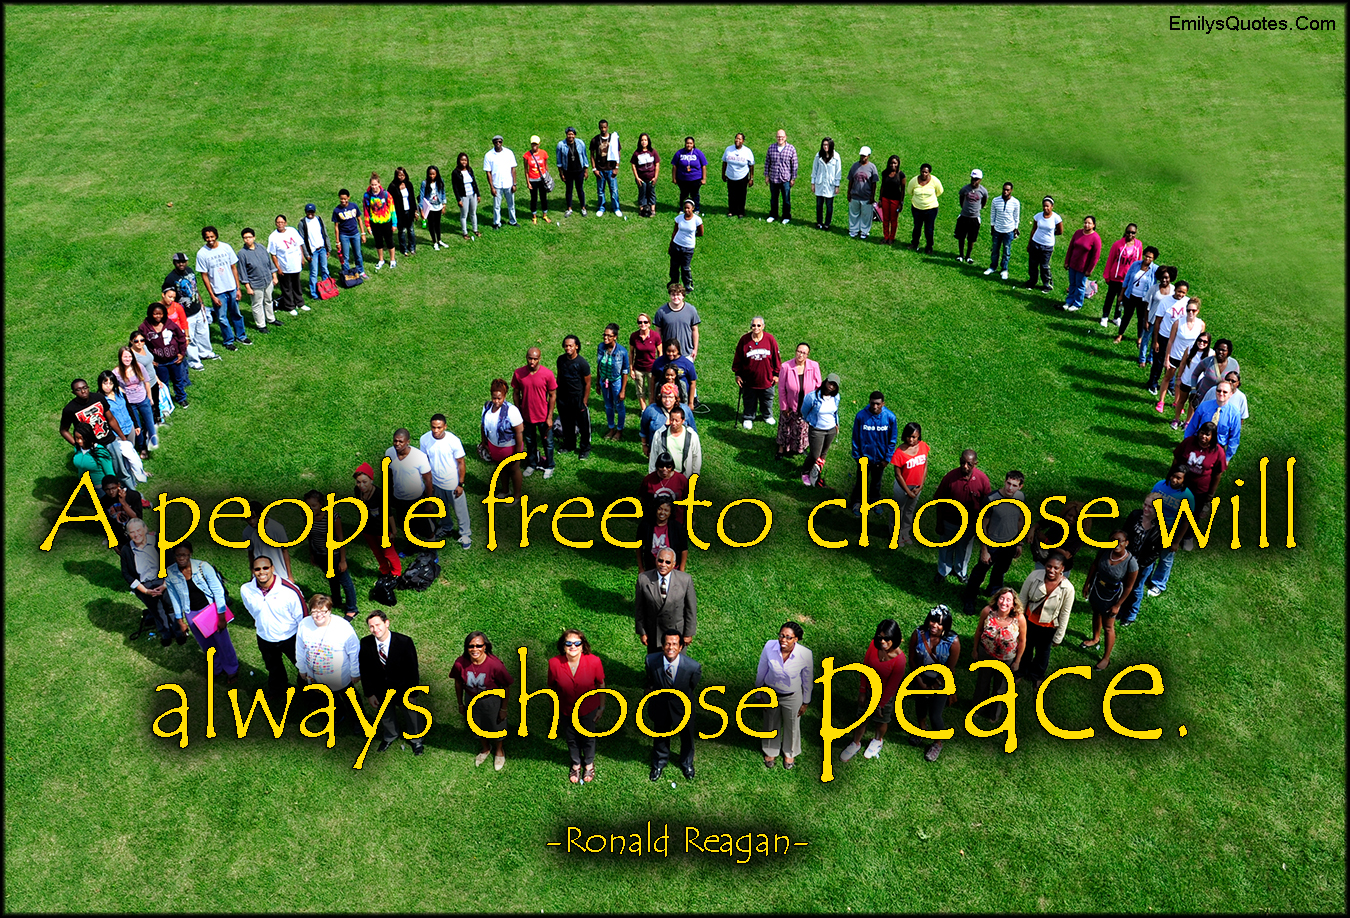 EmilysQuotes.Com - people, free, choose, choice, peace, inspirational, great, Ronald Reagan